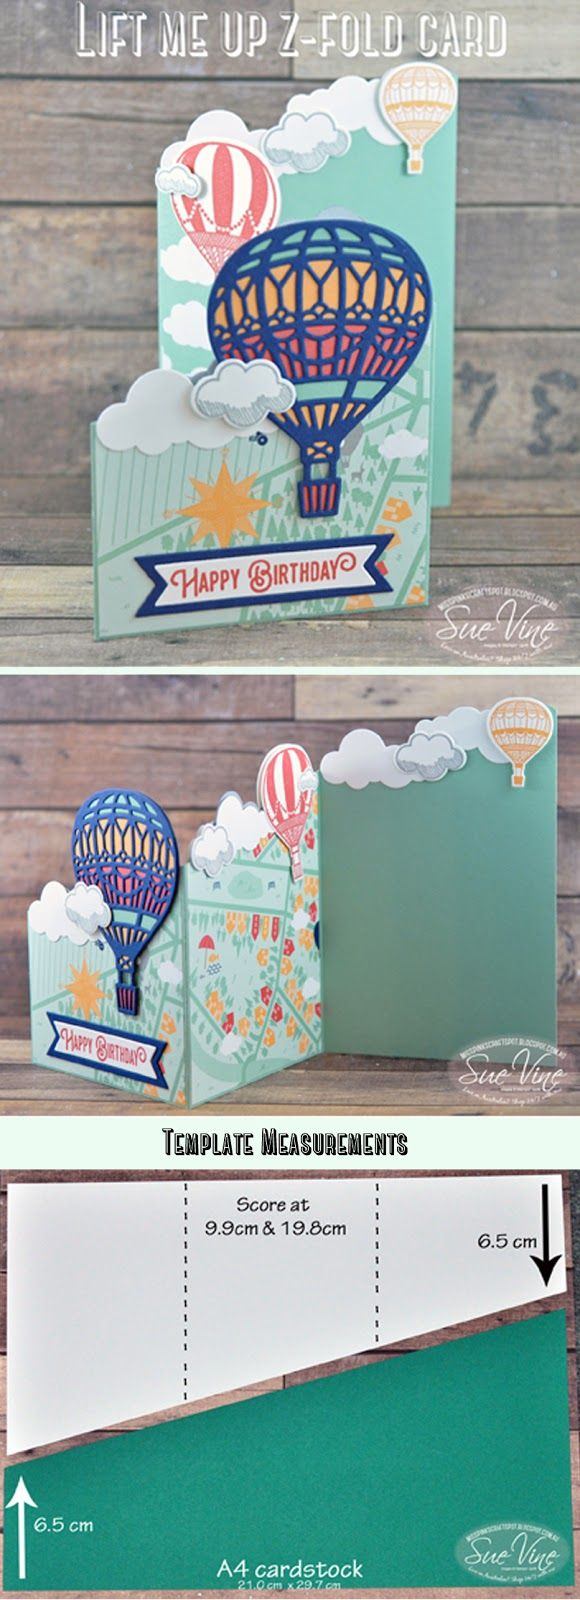 Miss Pinks Craft Spot: z-Fold card dimensions